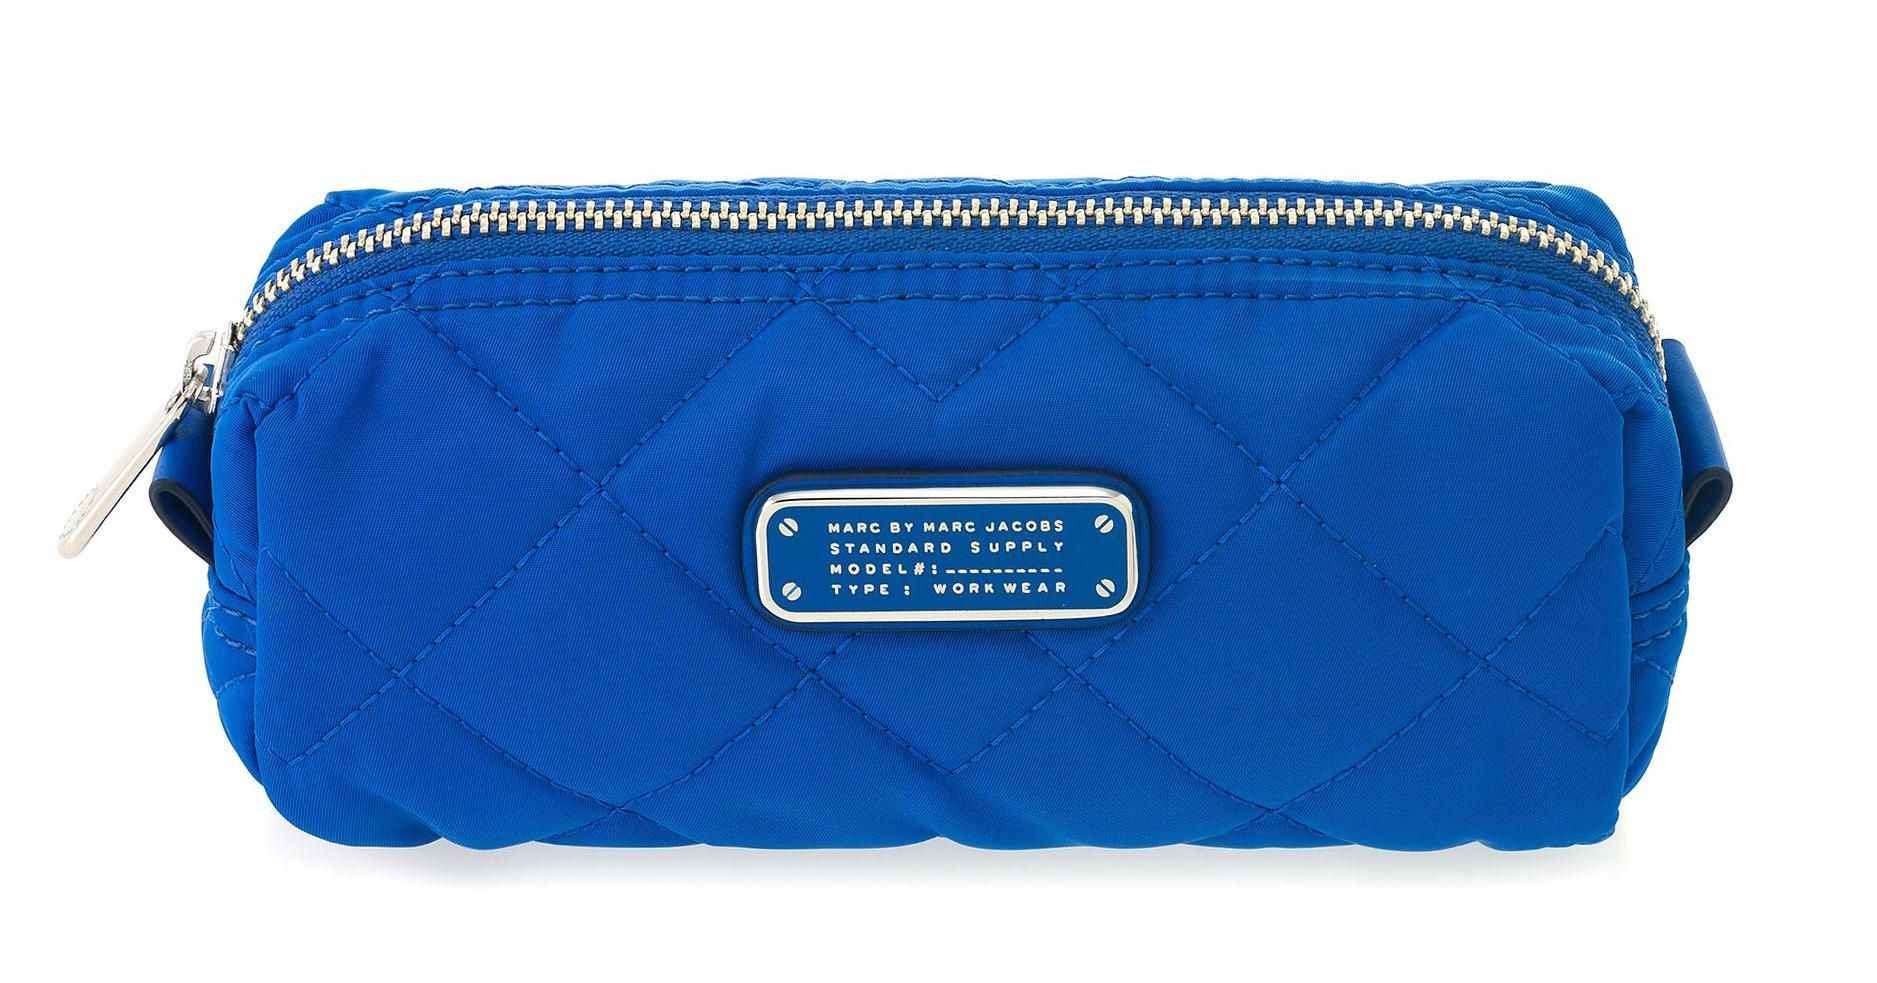 993d02104647 Marc by Marc Jacobs Crosby Quilted Nylon Narrow Cosmetic in Salton ...